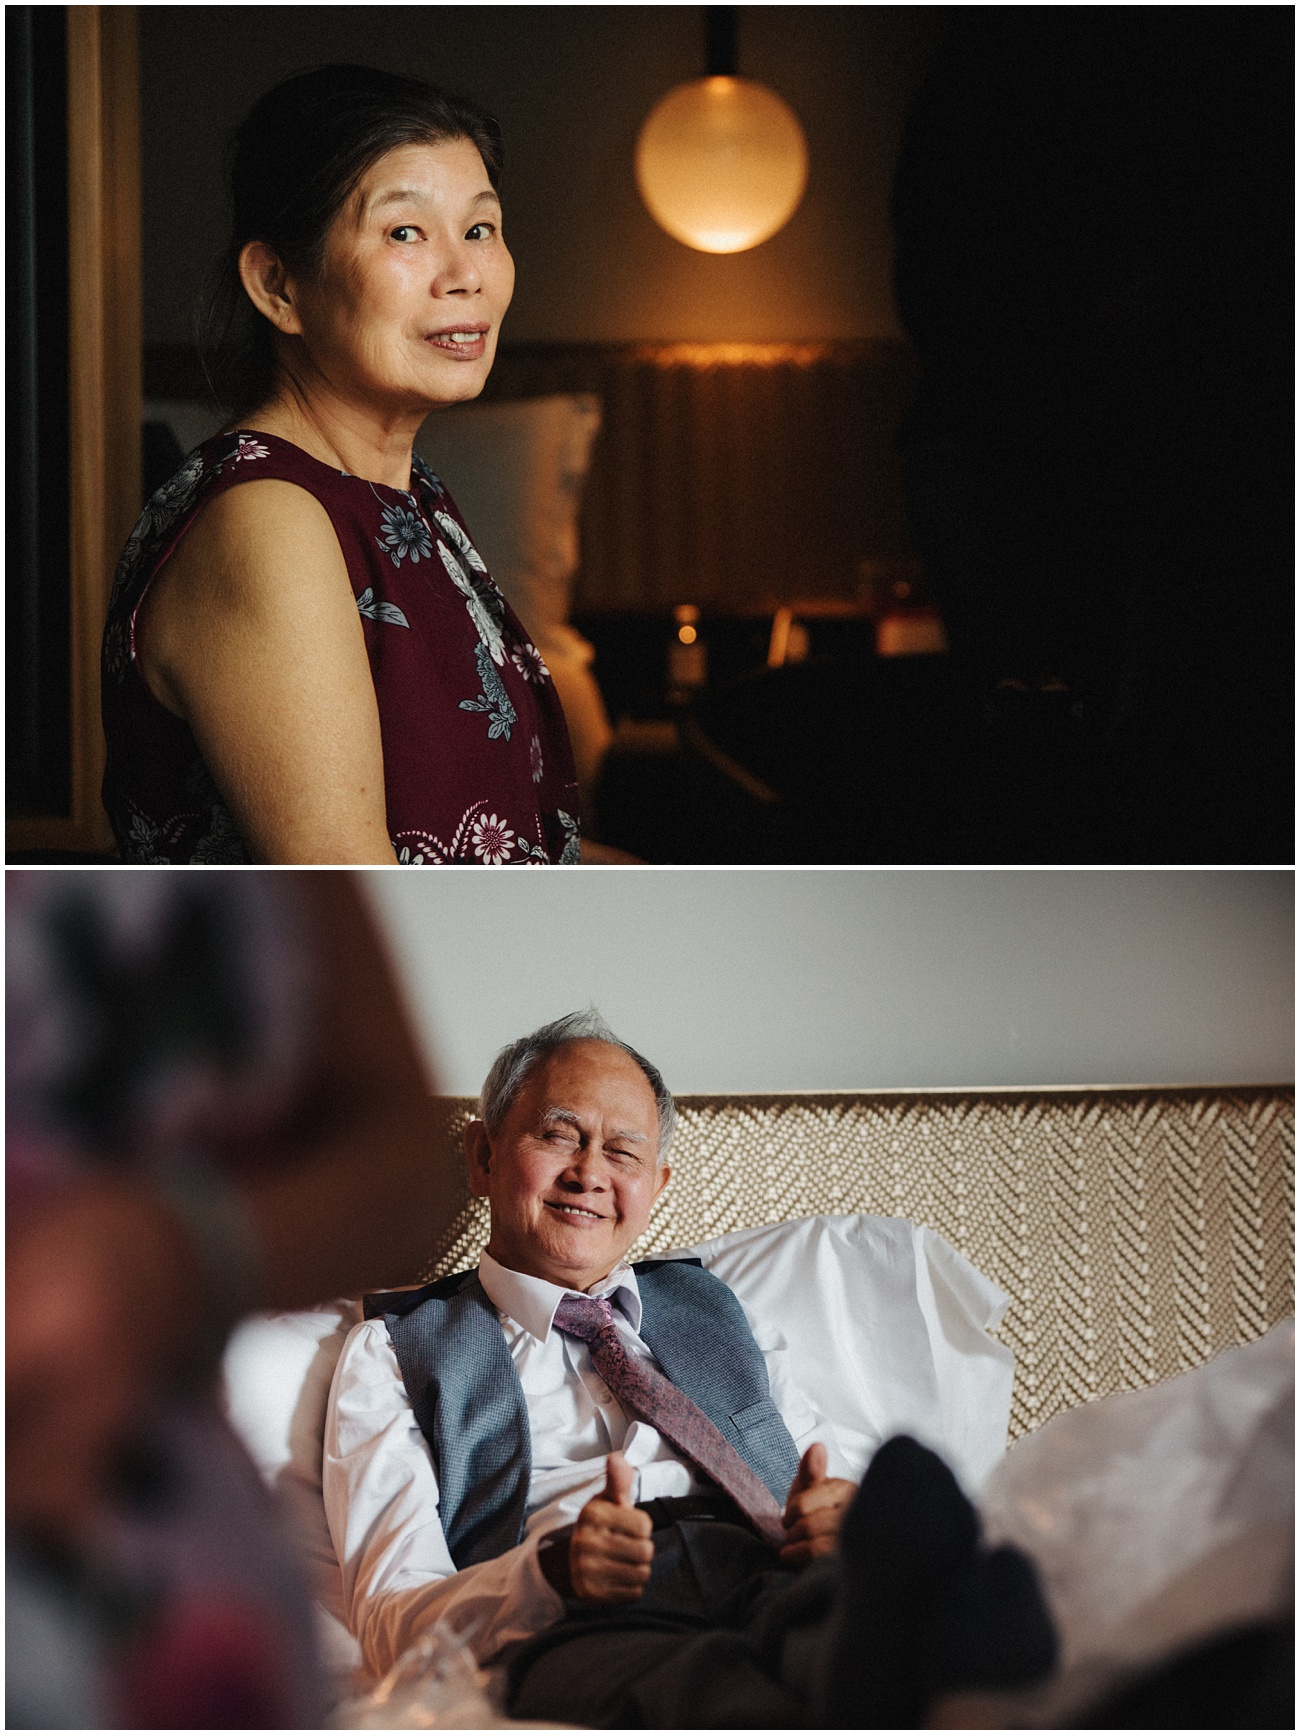 Portraits of the brides parents in the hotel room